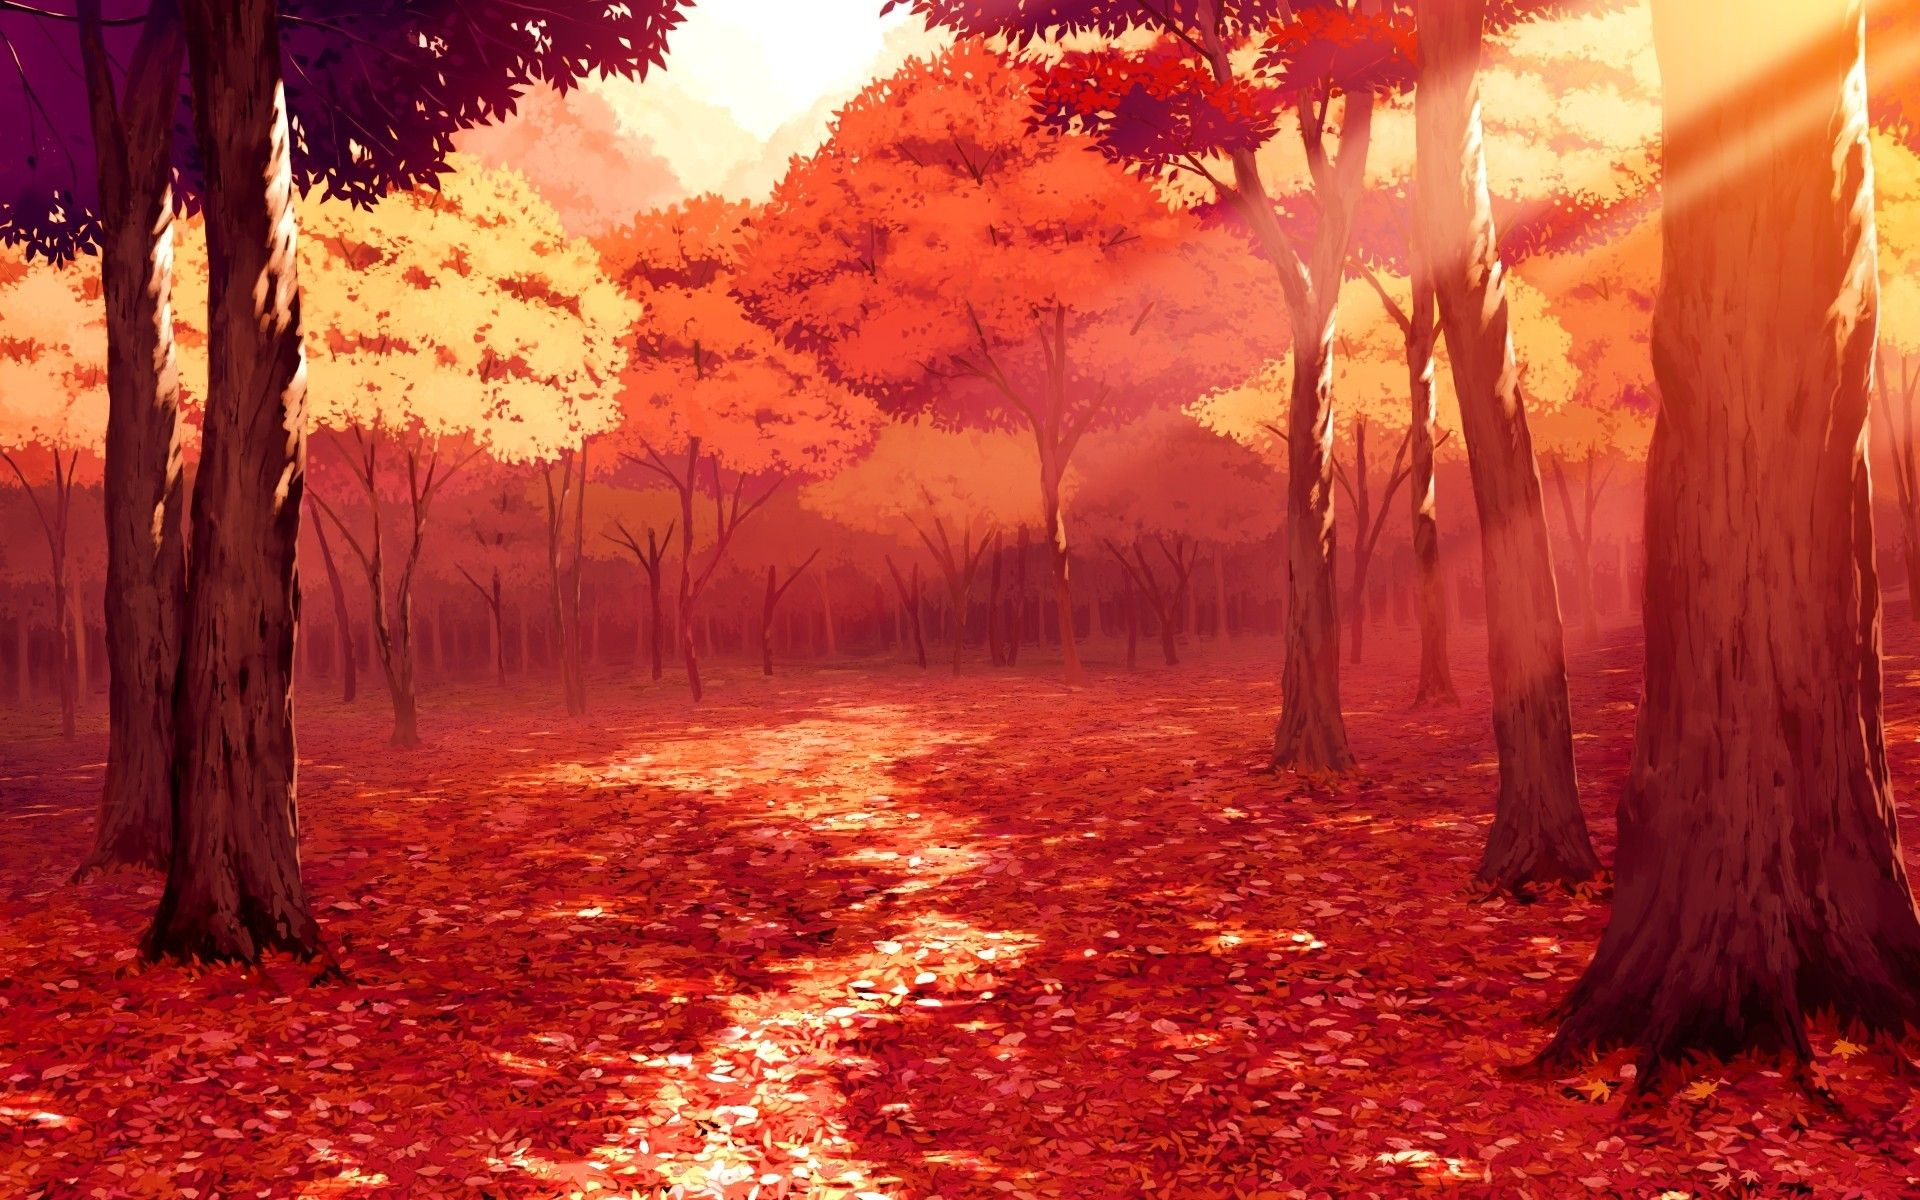 Forest Artwork Anime Fall Sunlight Drawing Leaves Red Wallpaper Anime Scenery Autumn Scenery Scenery Wallpaper